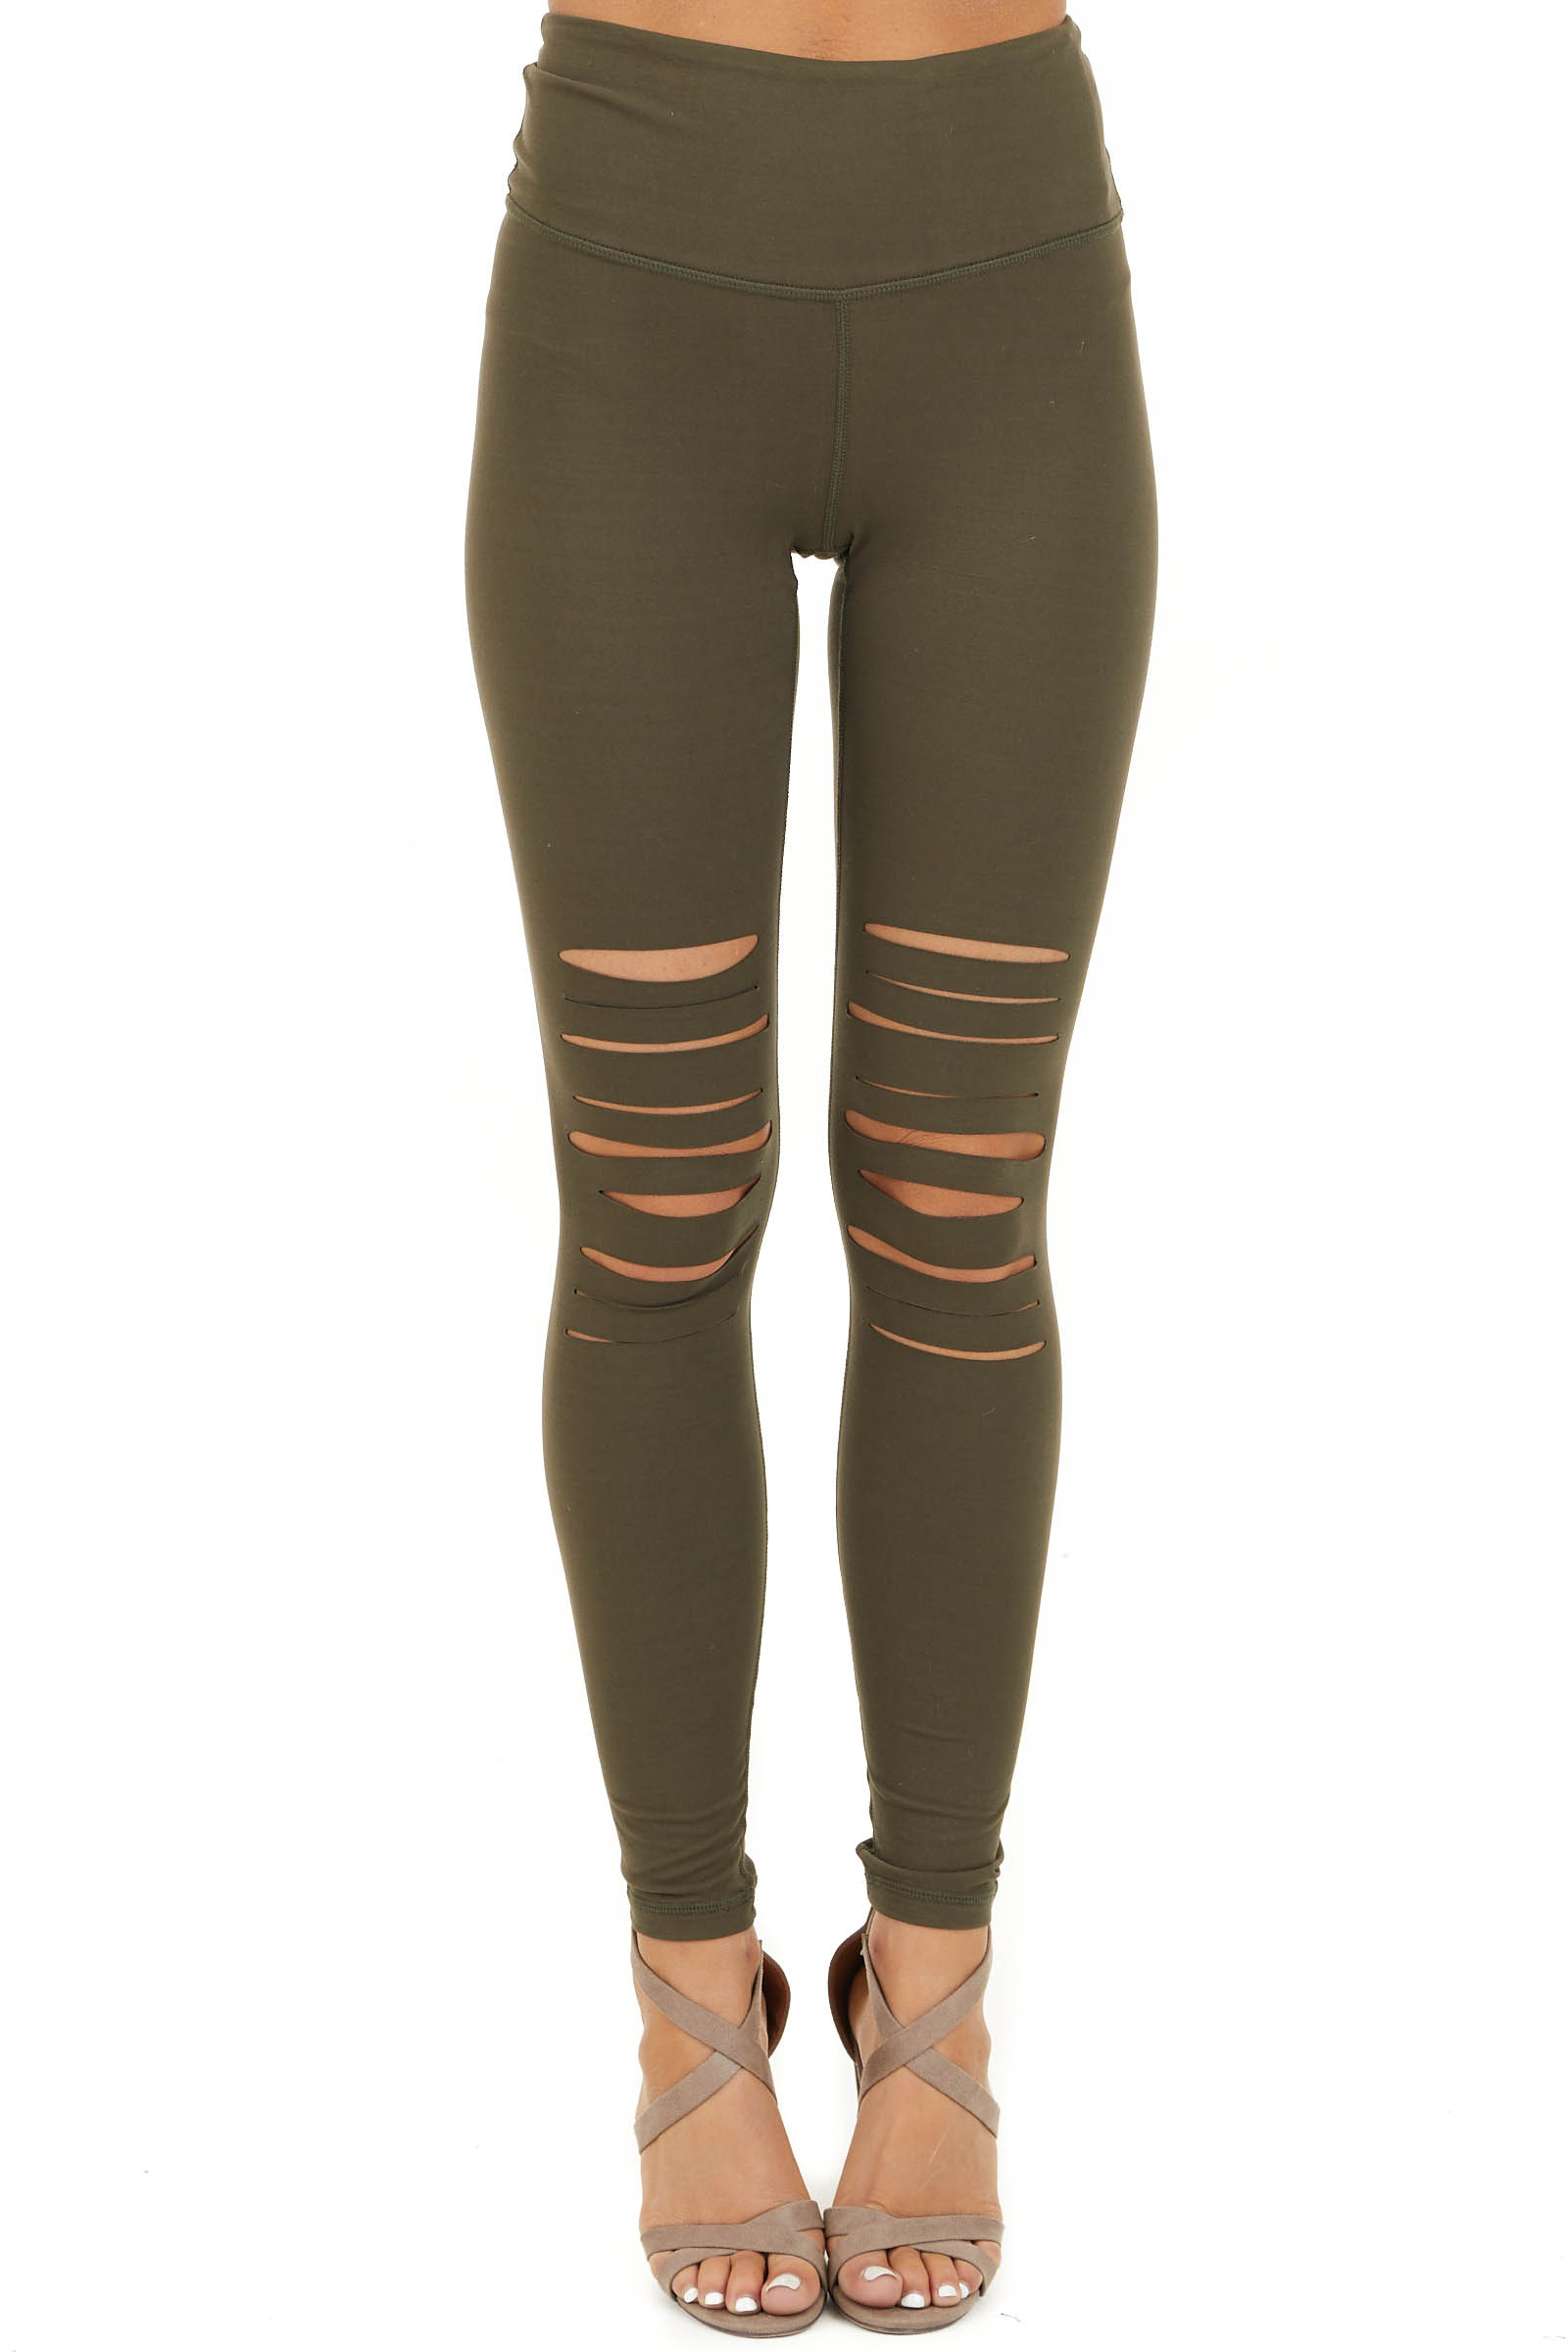 Olive Solid Leggings with Laser Cutout Details front view